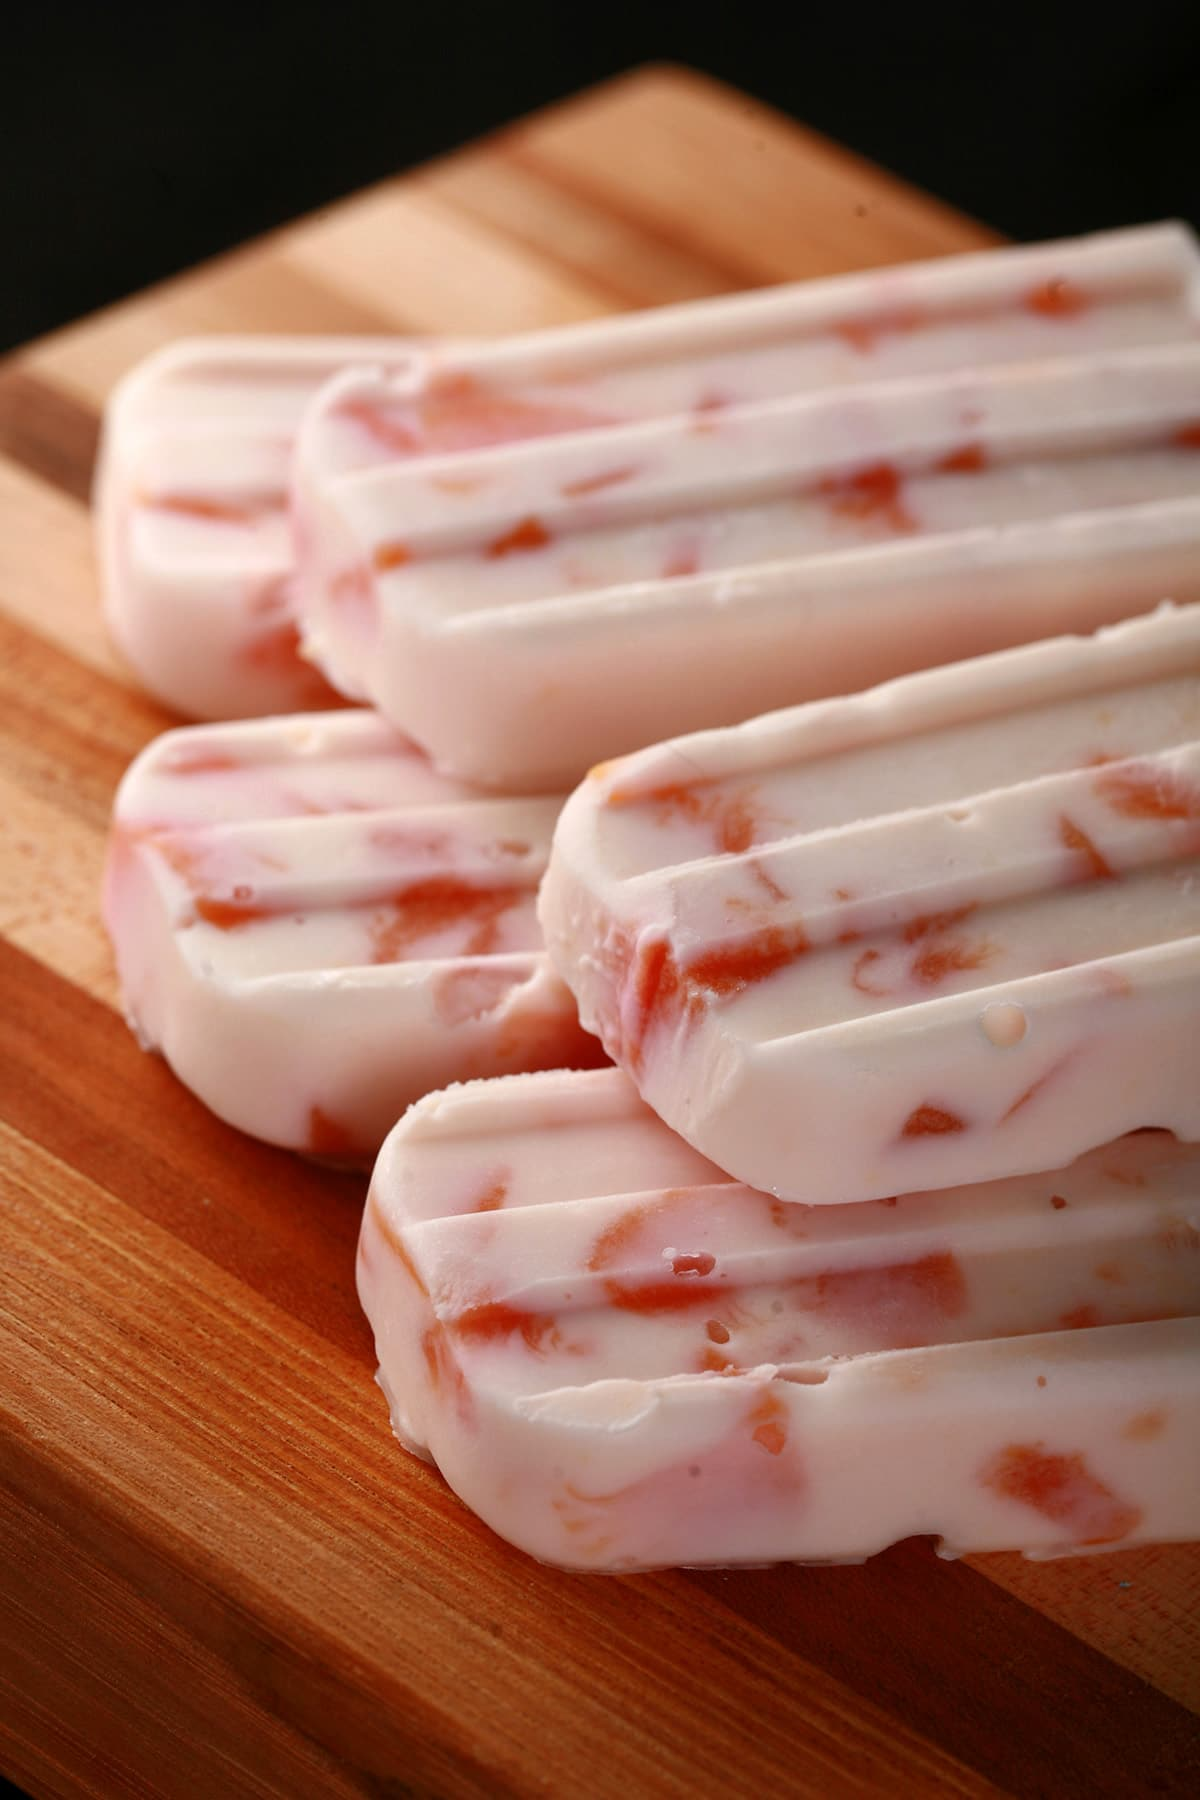 Southern Comfort Peaches N Cream Popsicles, laid out on a striped wooden cutting board.